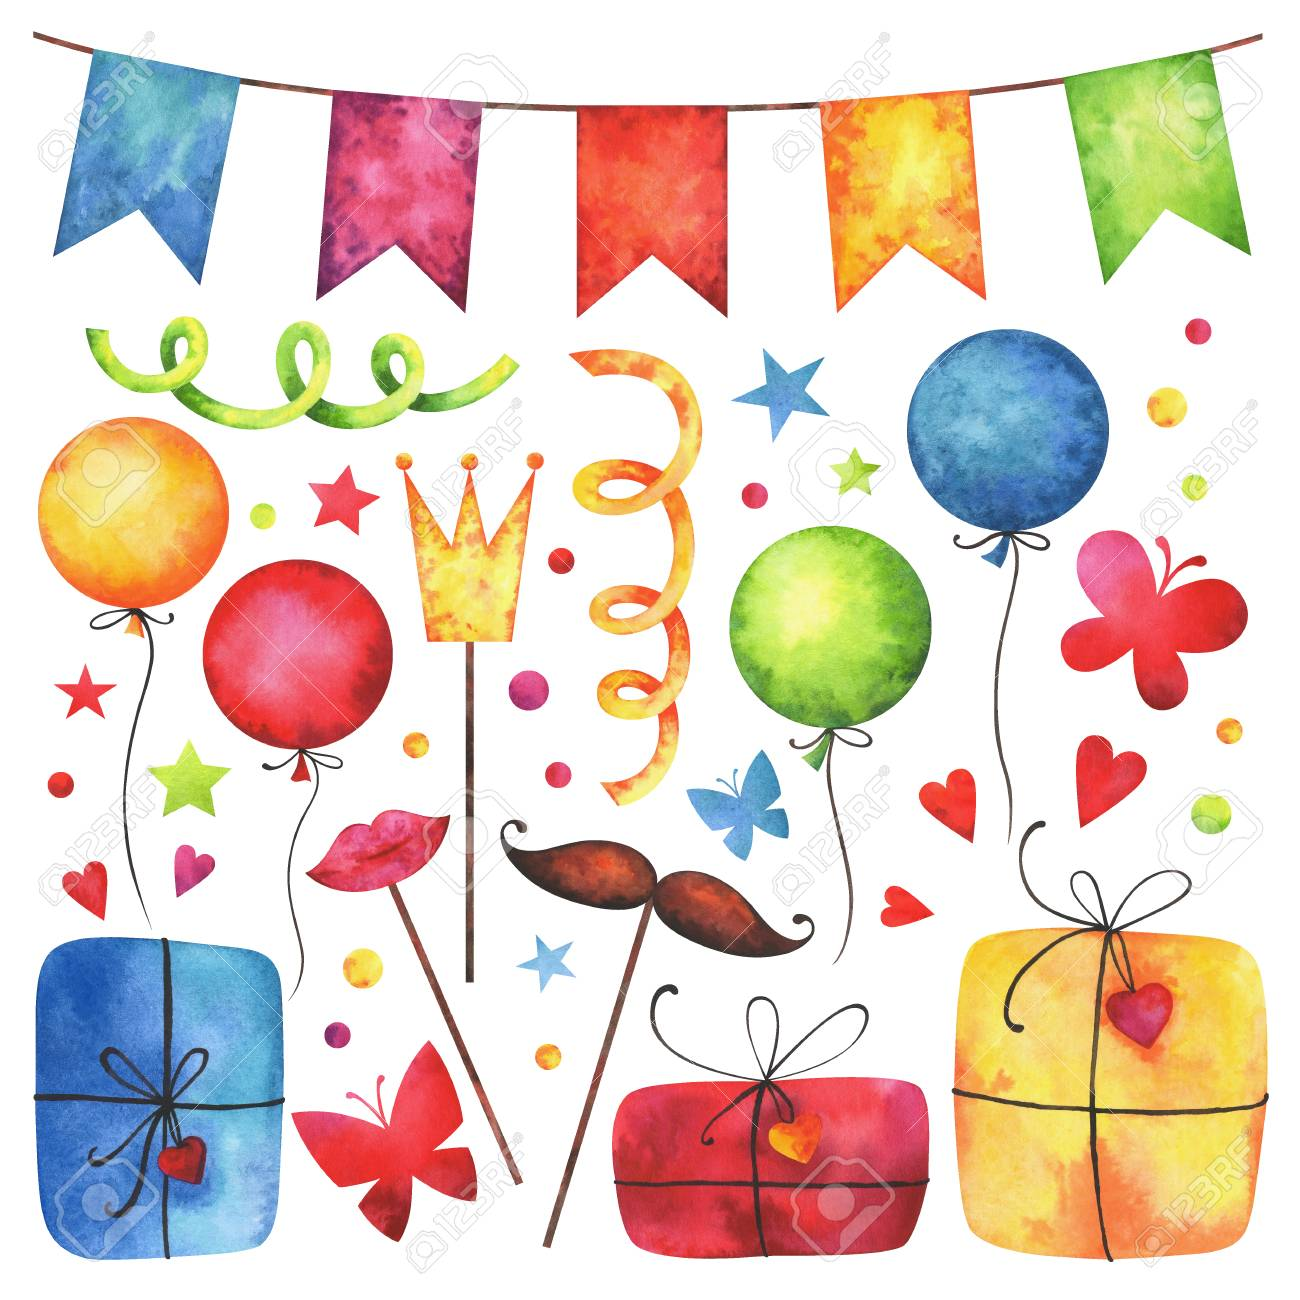 Watercolor Happy birthday party clip art set. Hand painted hearts, gift boxes, festive garlands, air balloons, cake, butterflies, hat cone, confetti, props, stars isolated on white background. - 93198664